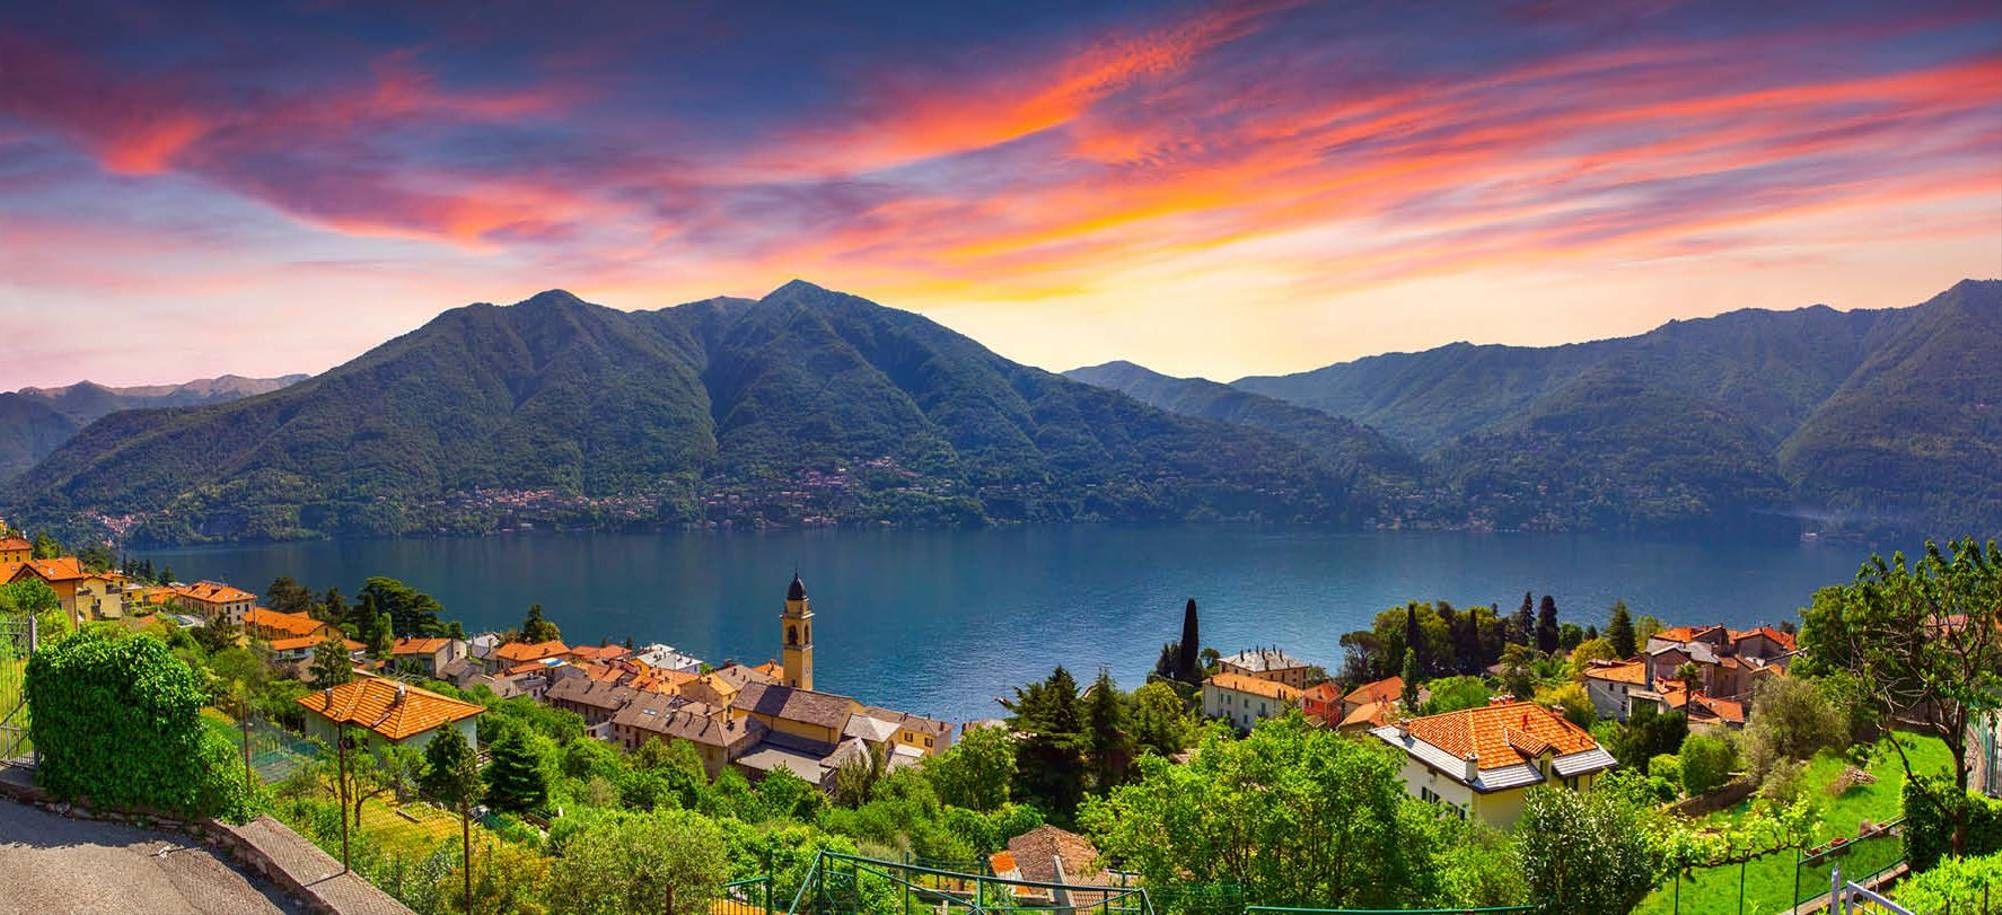 Lake Como - Desktop Itinerary.jpg